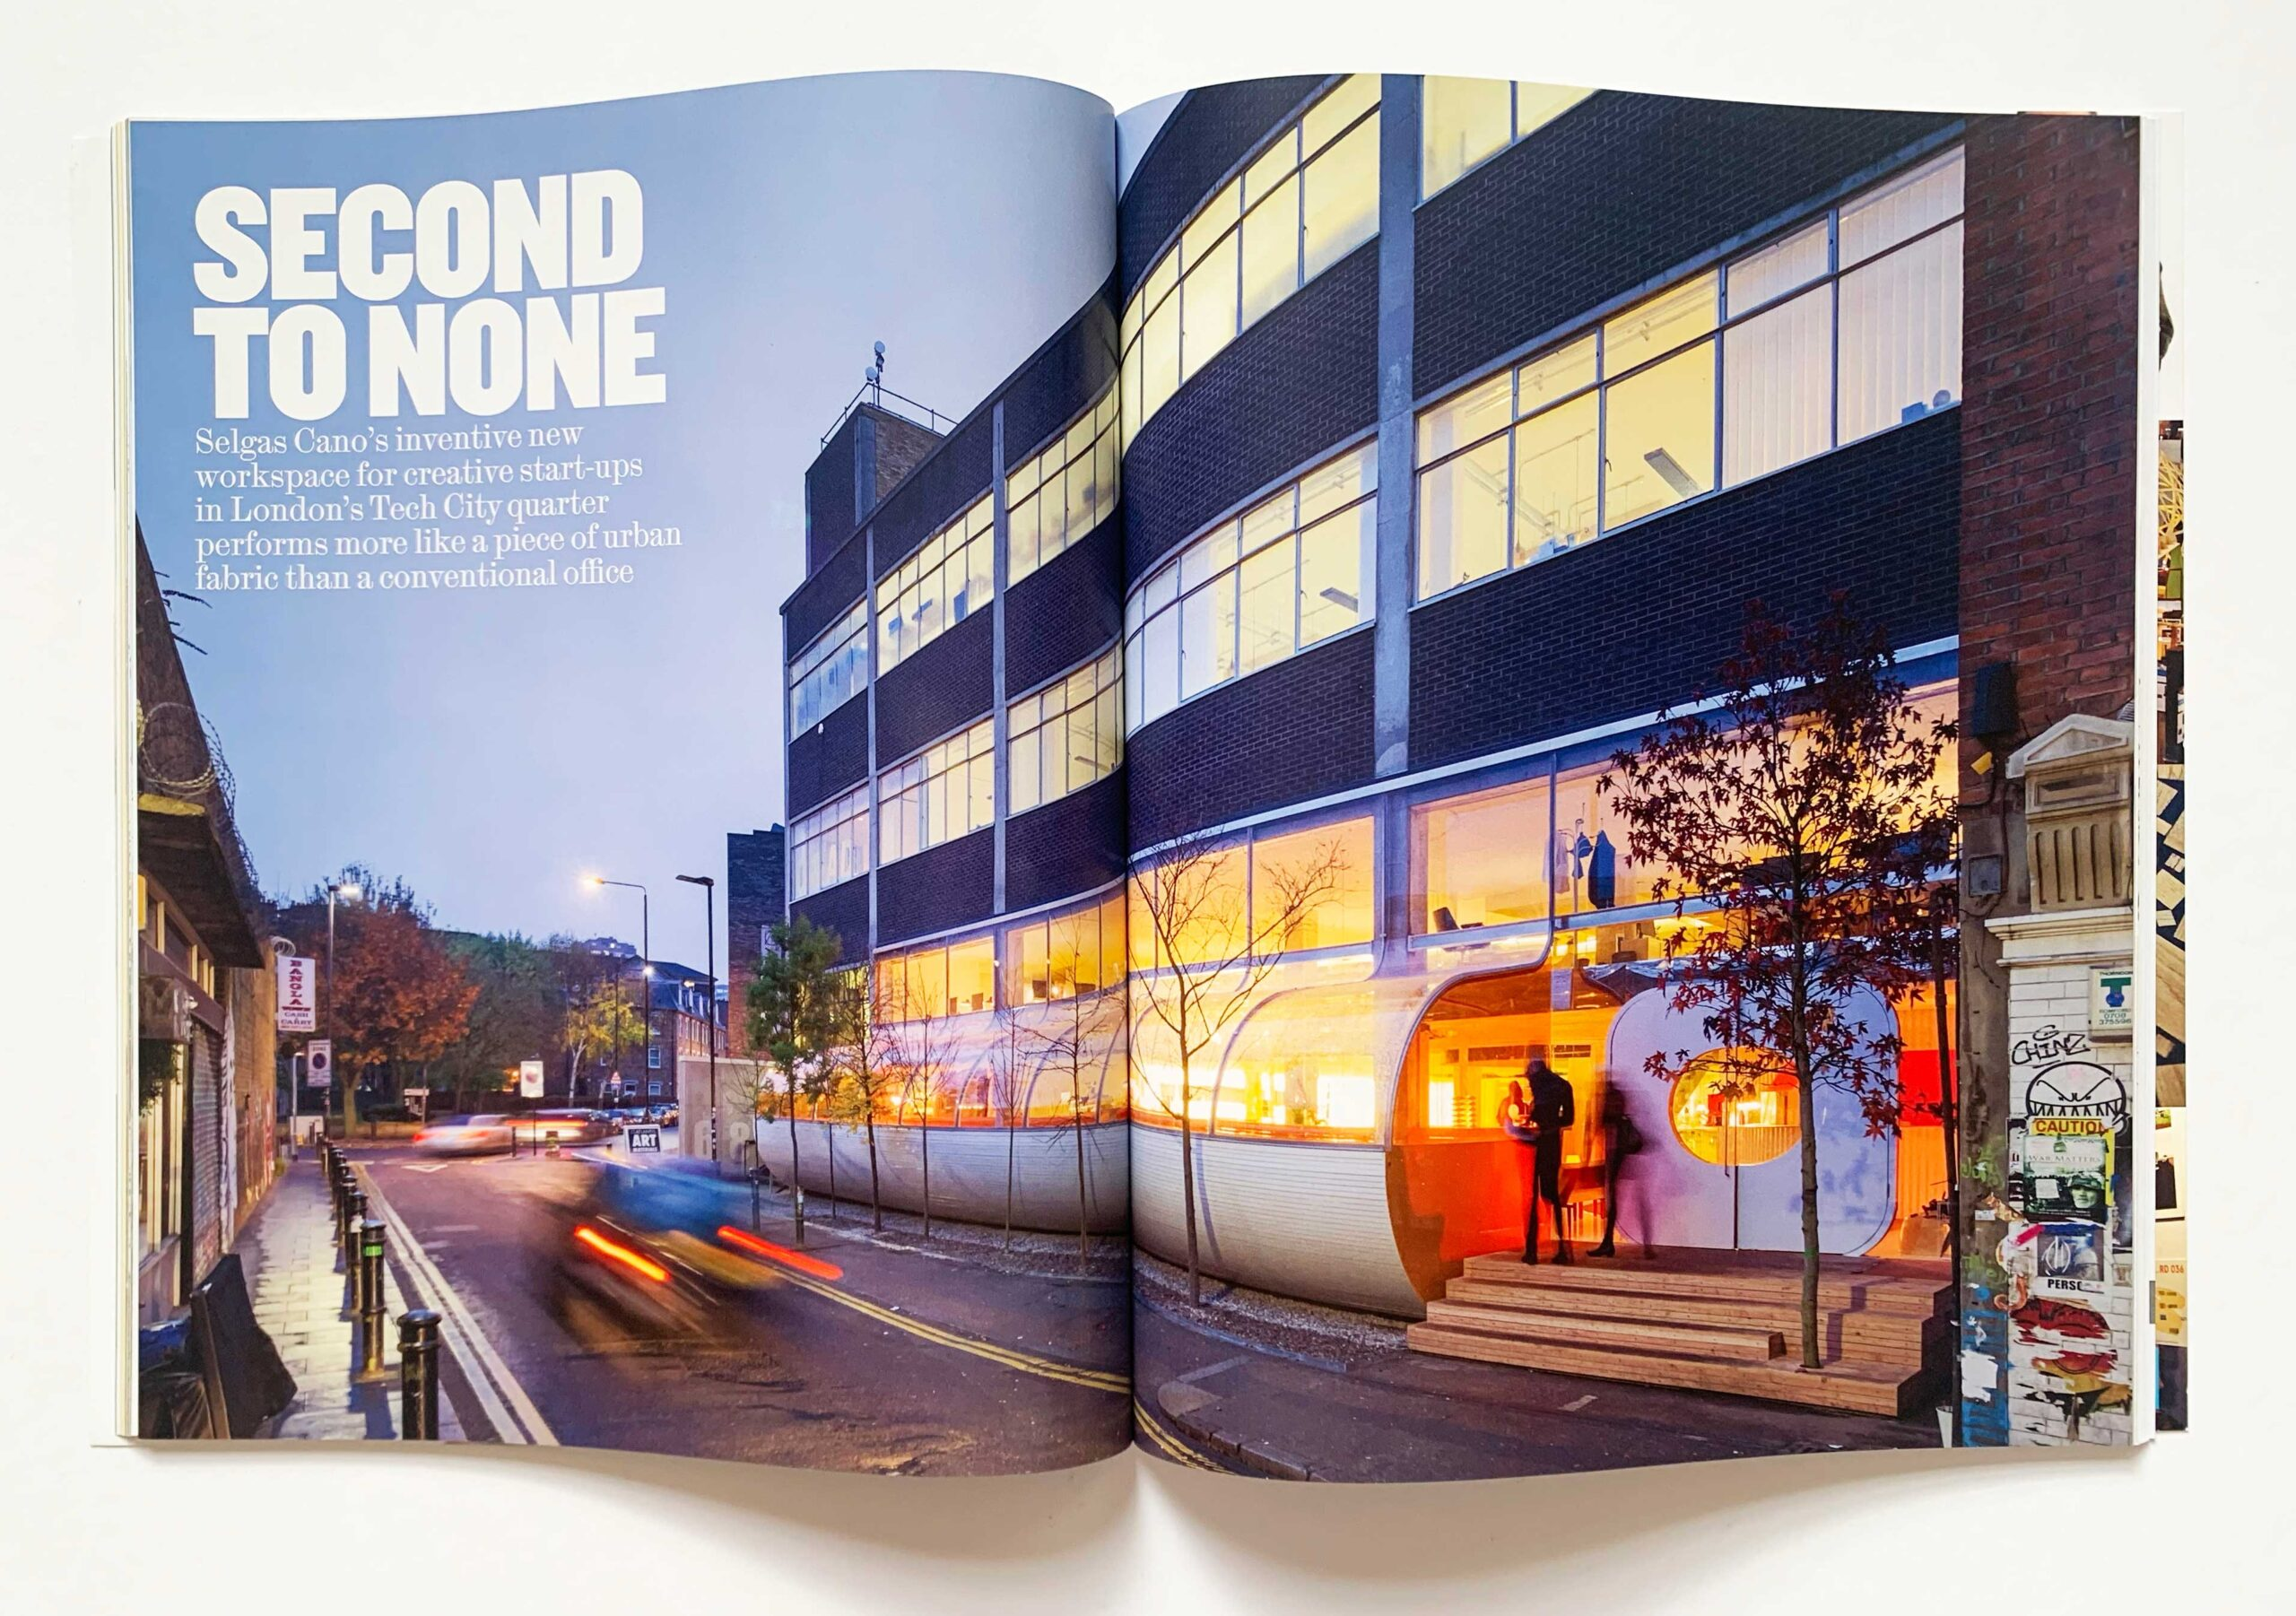 Fig. 10. My review of Second Home in the AR. Co-founded by Rohan Silva and designed by Selgas Cano, the LSA was based there for the 2015/16 academic year, and it was our second home (after Great James Street).